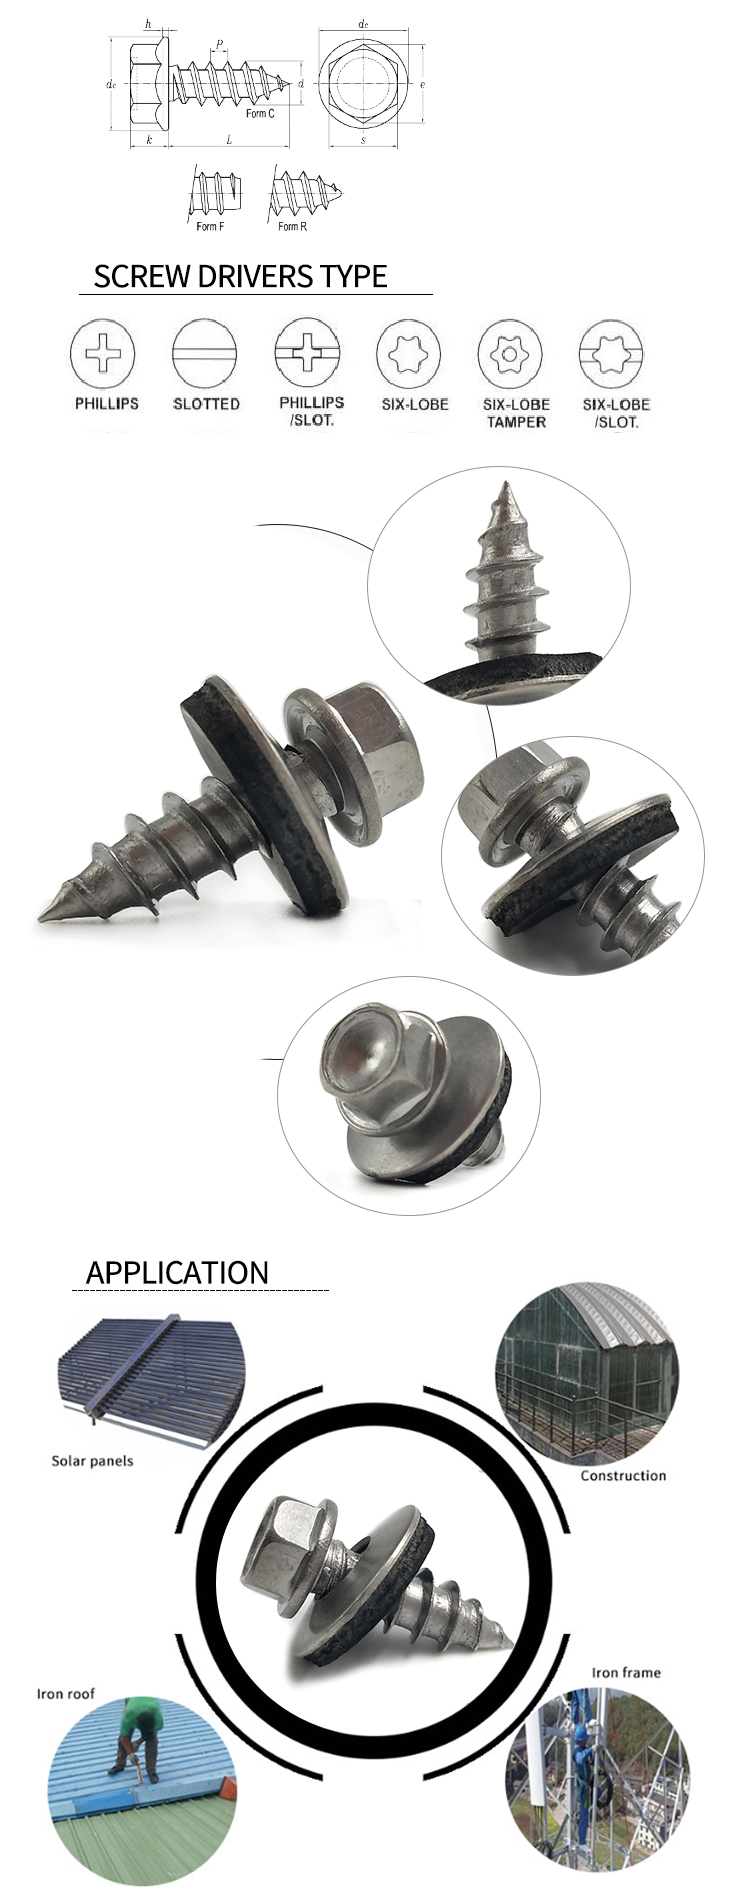 flange tapping screw-细节应用